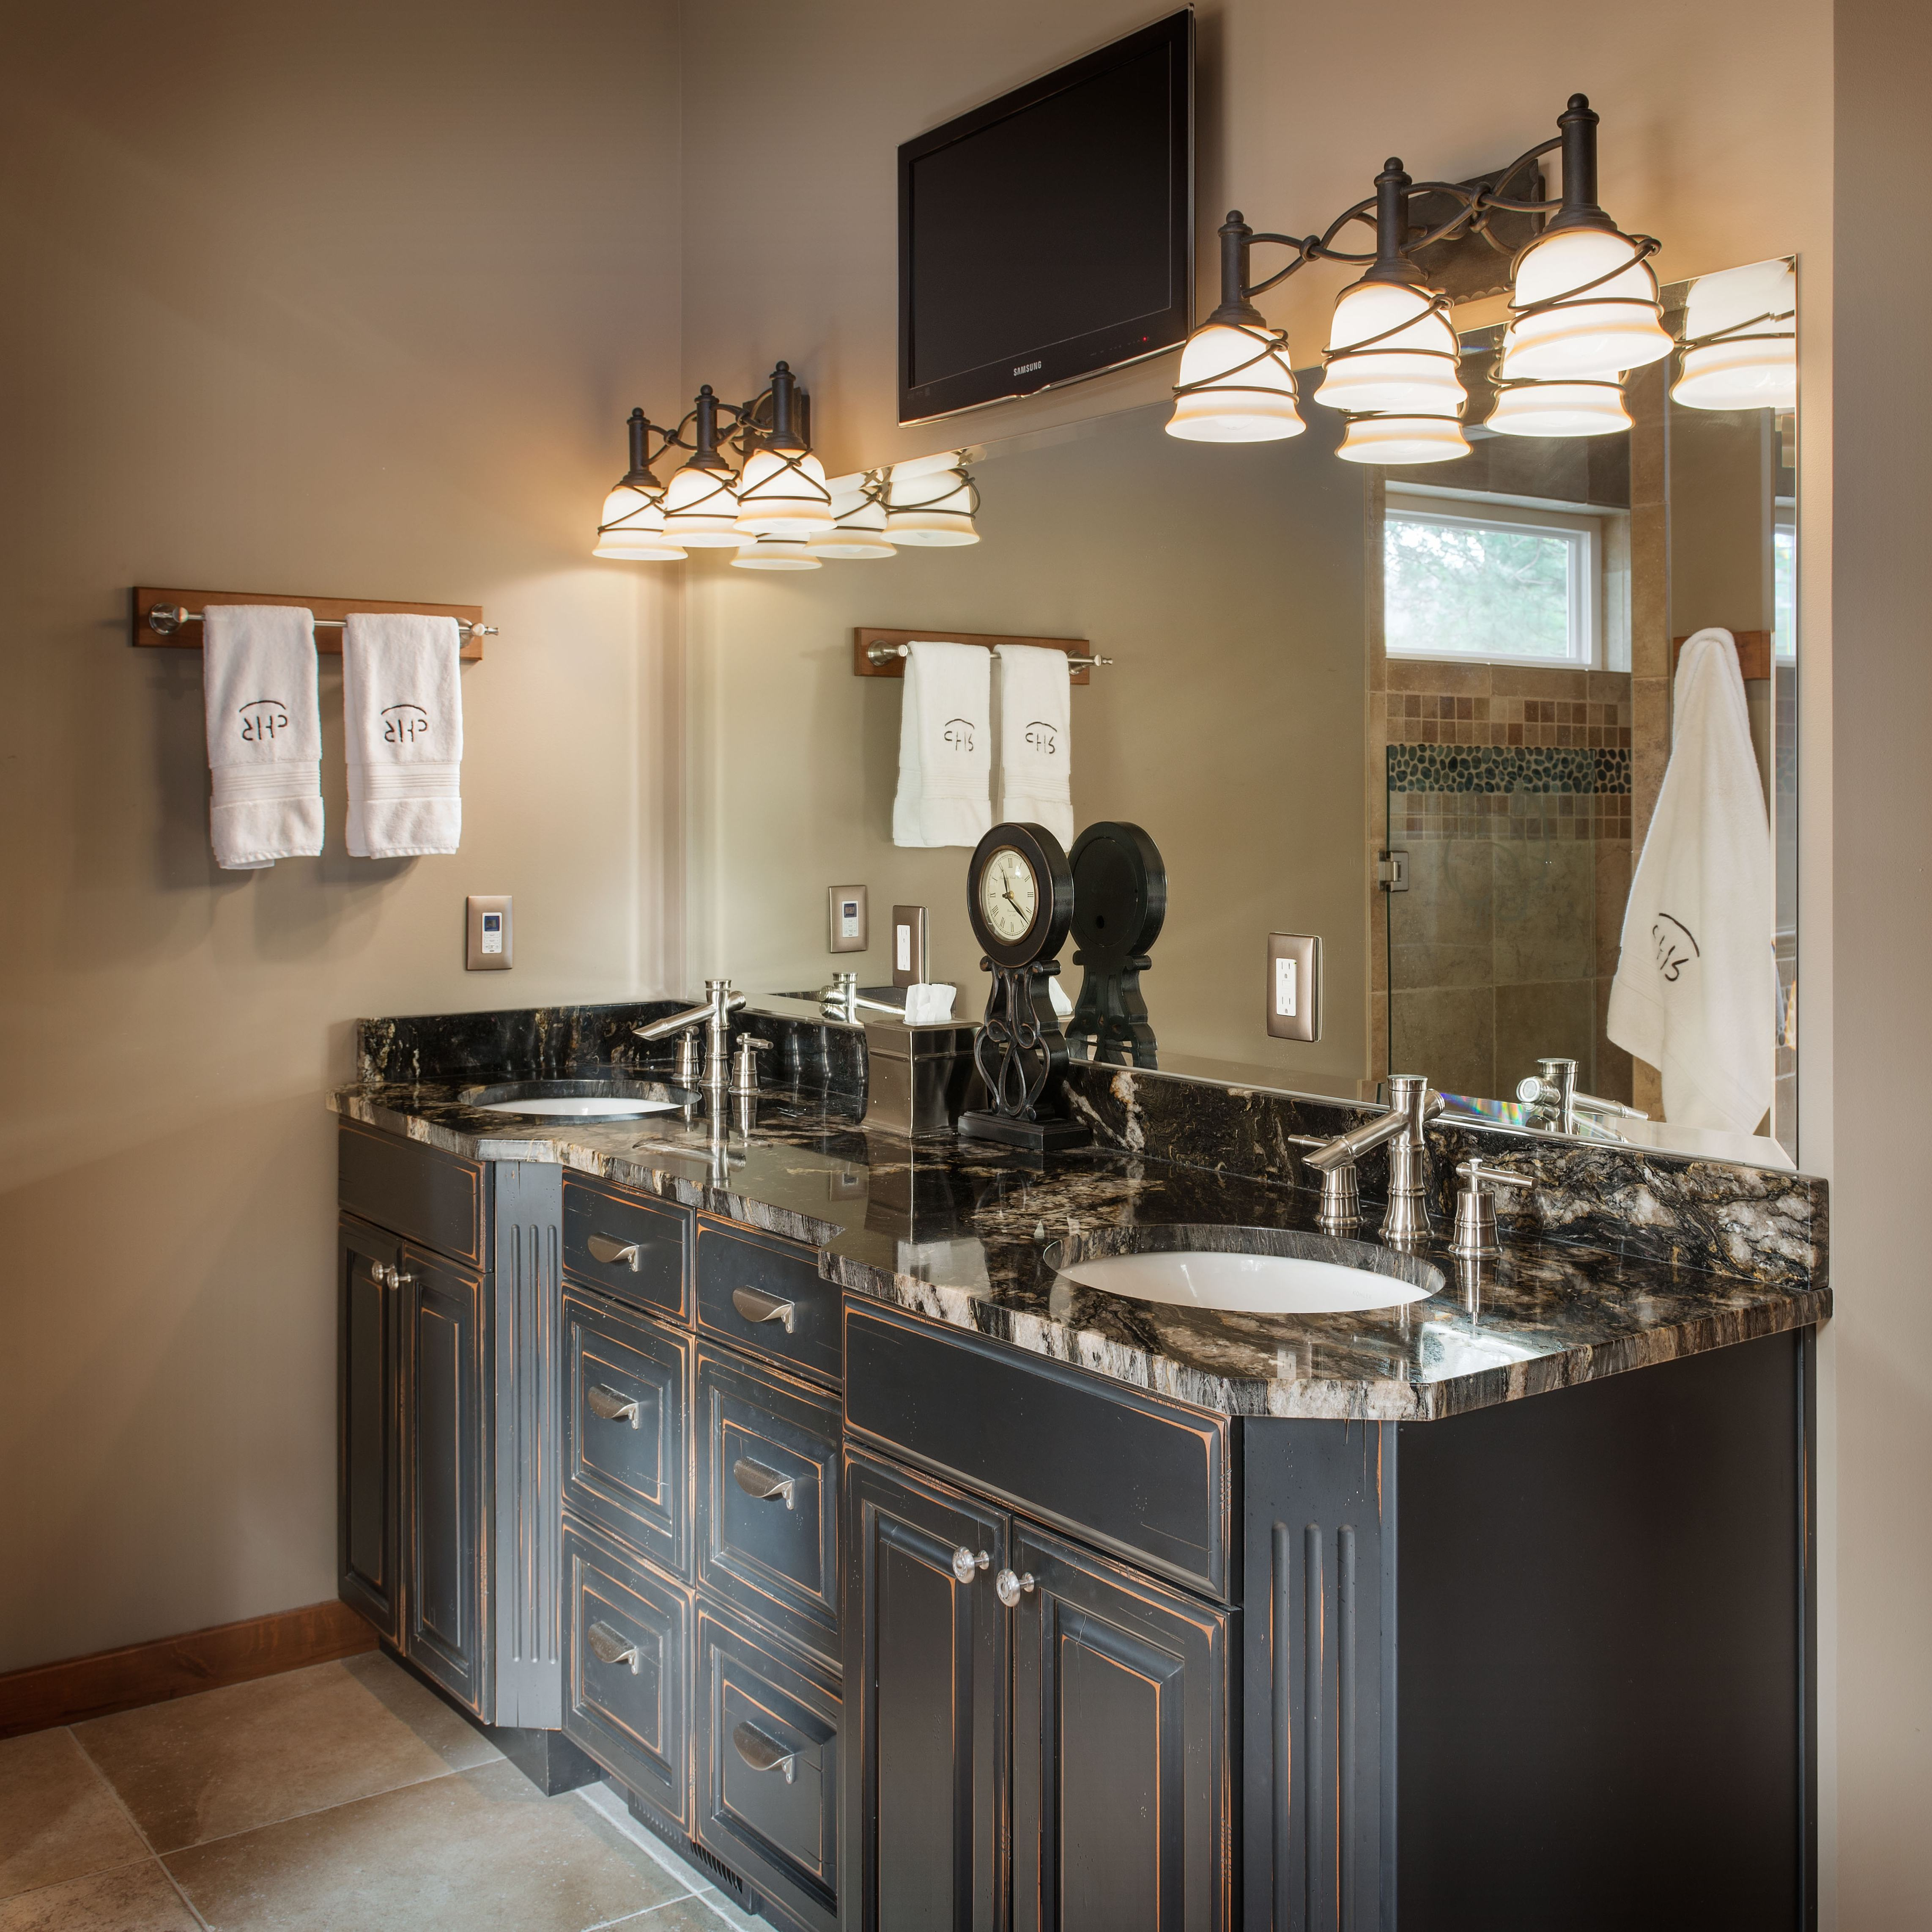 Bathroom Cabinets Builders Warehouse 28 Images Bathroom Cabinets Builders Warehouse Bathroom